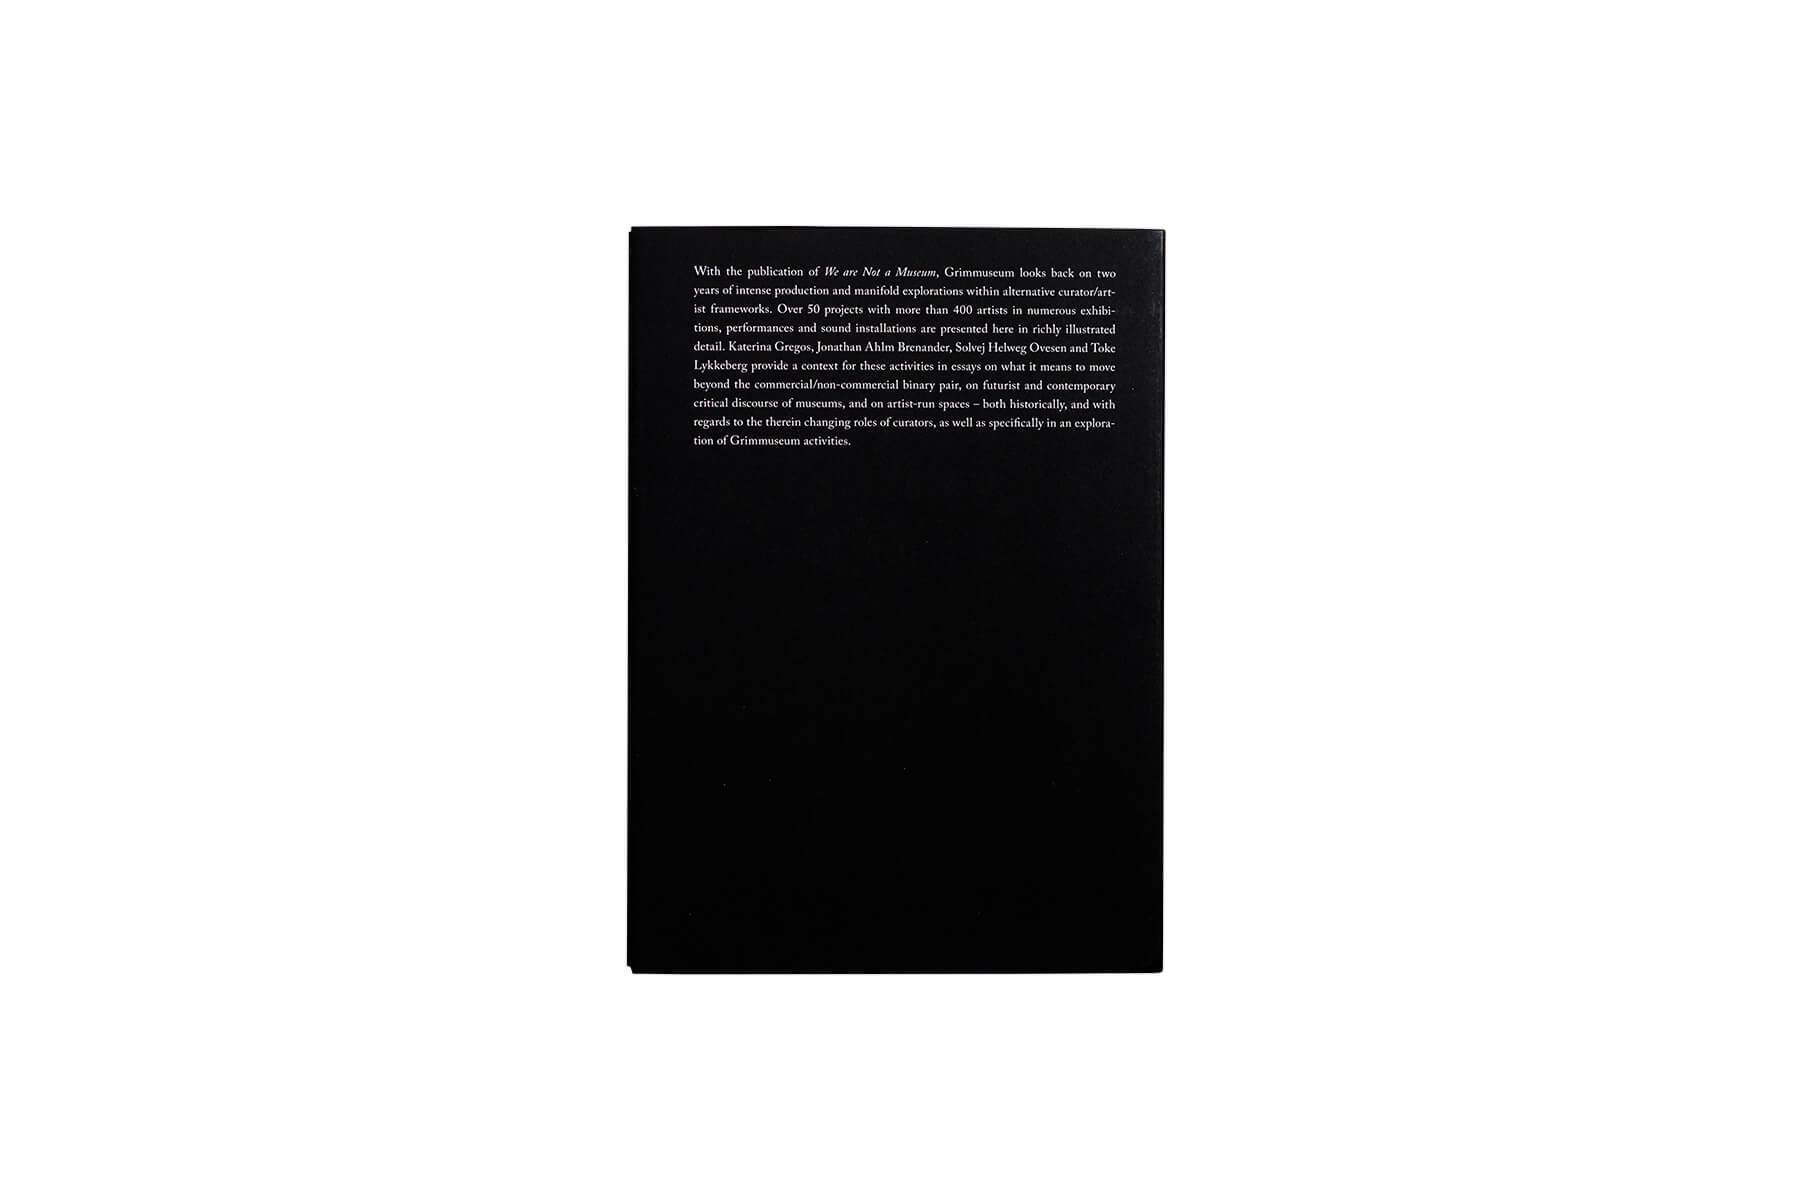 Product image of Grimmuseum: We are not a museum